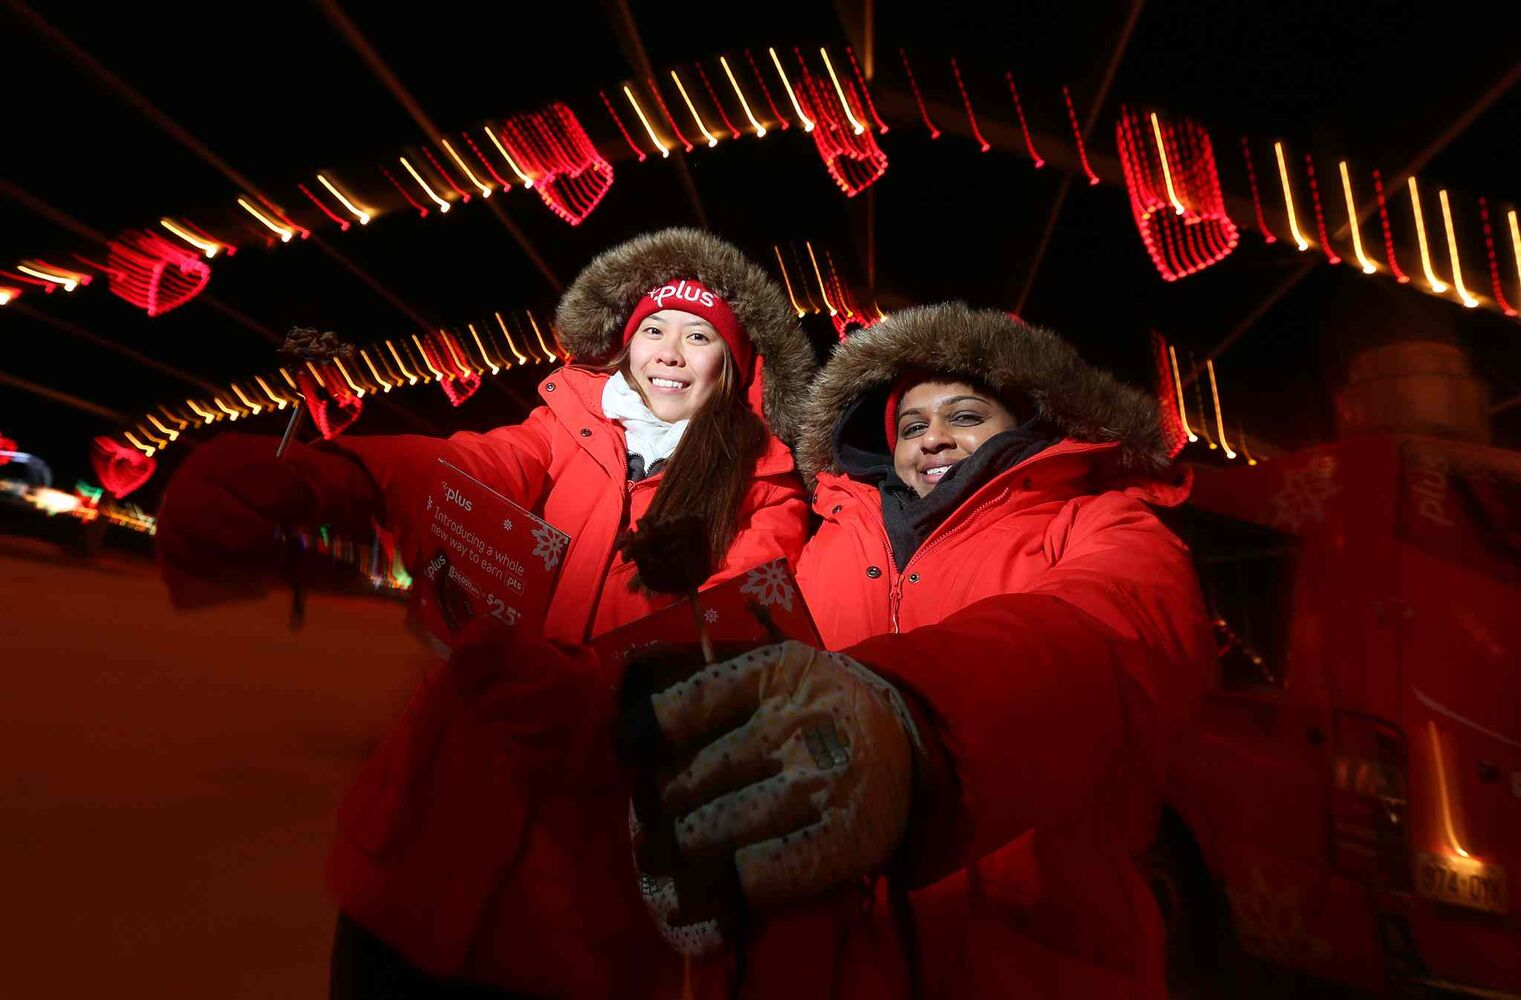 Michelle Truong (left) and Alissa Patel hand out sweet treats as part of a promotion at Canad Inns Winter Wonderland.